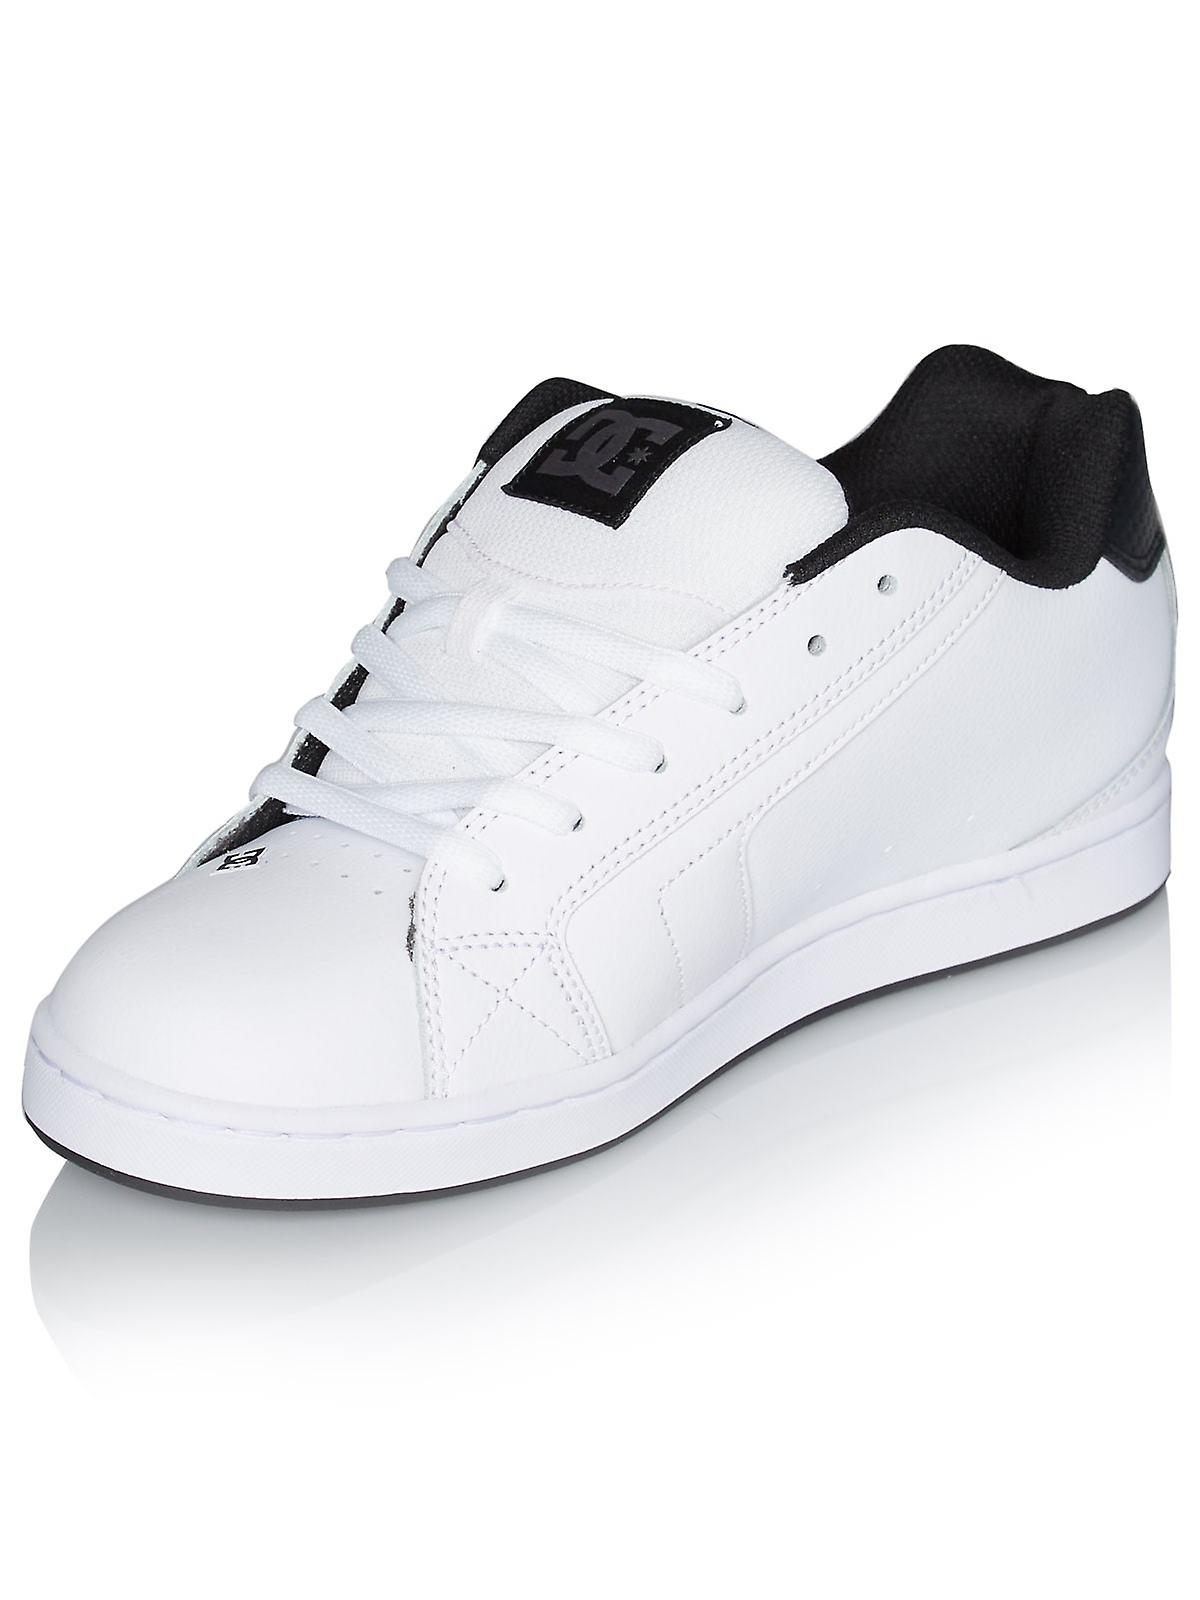 online retailer 192ab 7c5a5 Clarks Ashcombe Mid Gtx 261354097 universal all year Hommes Chaussure s,